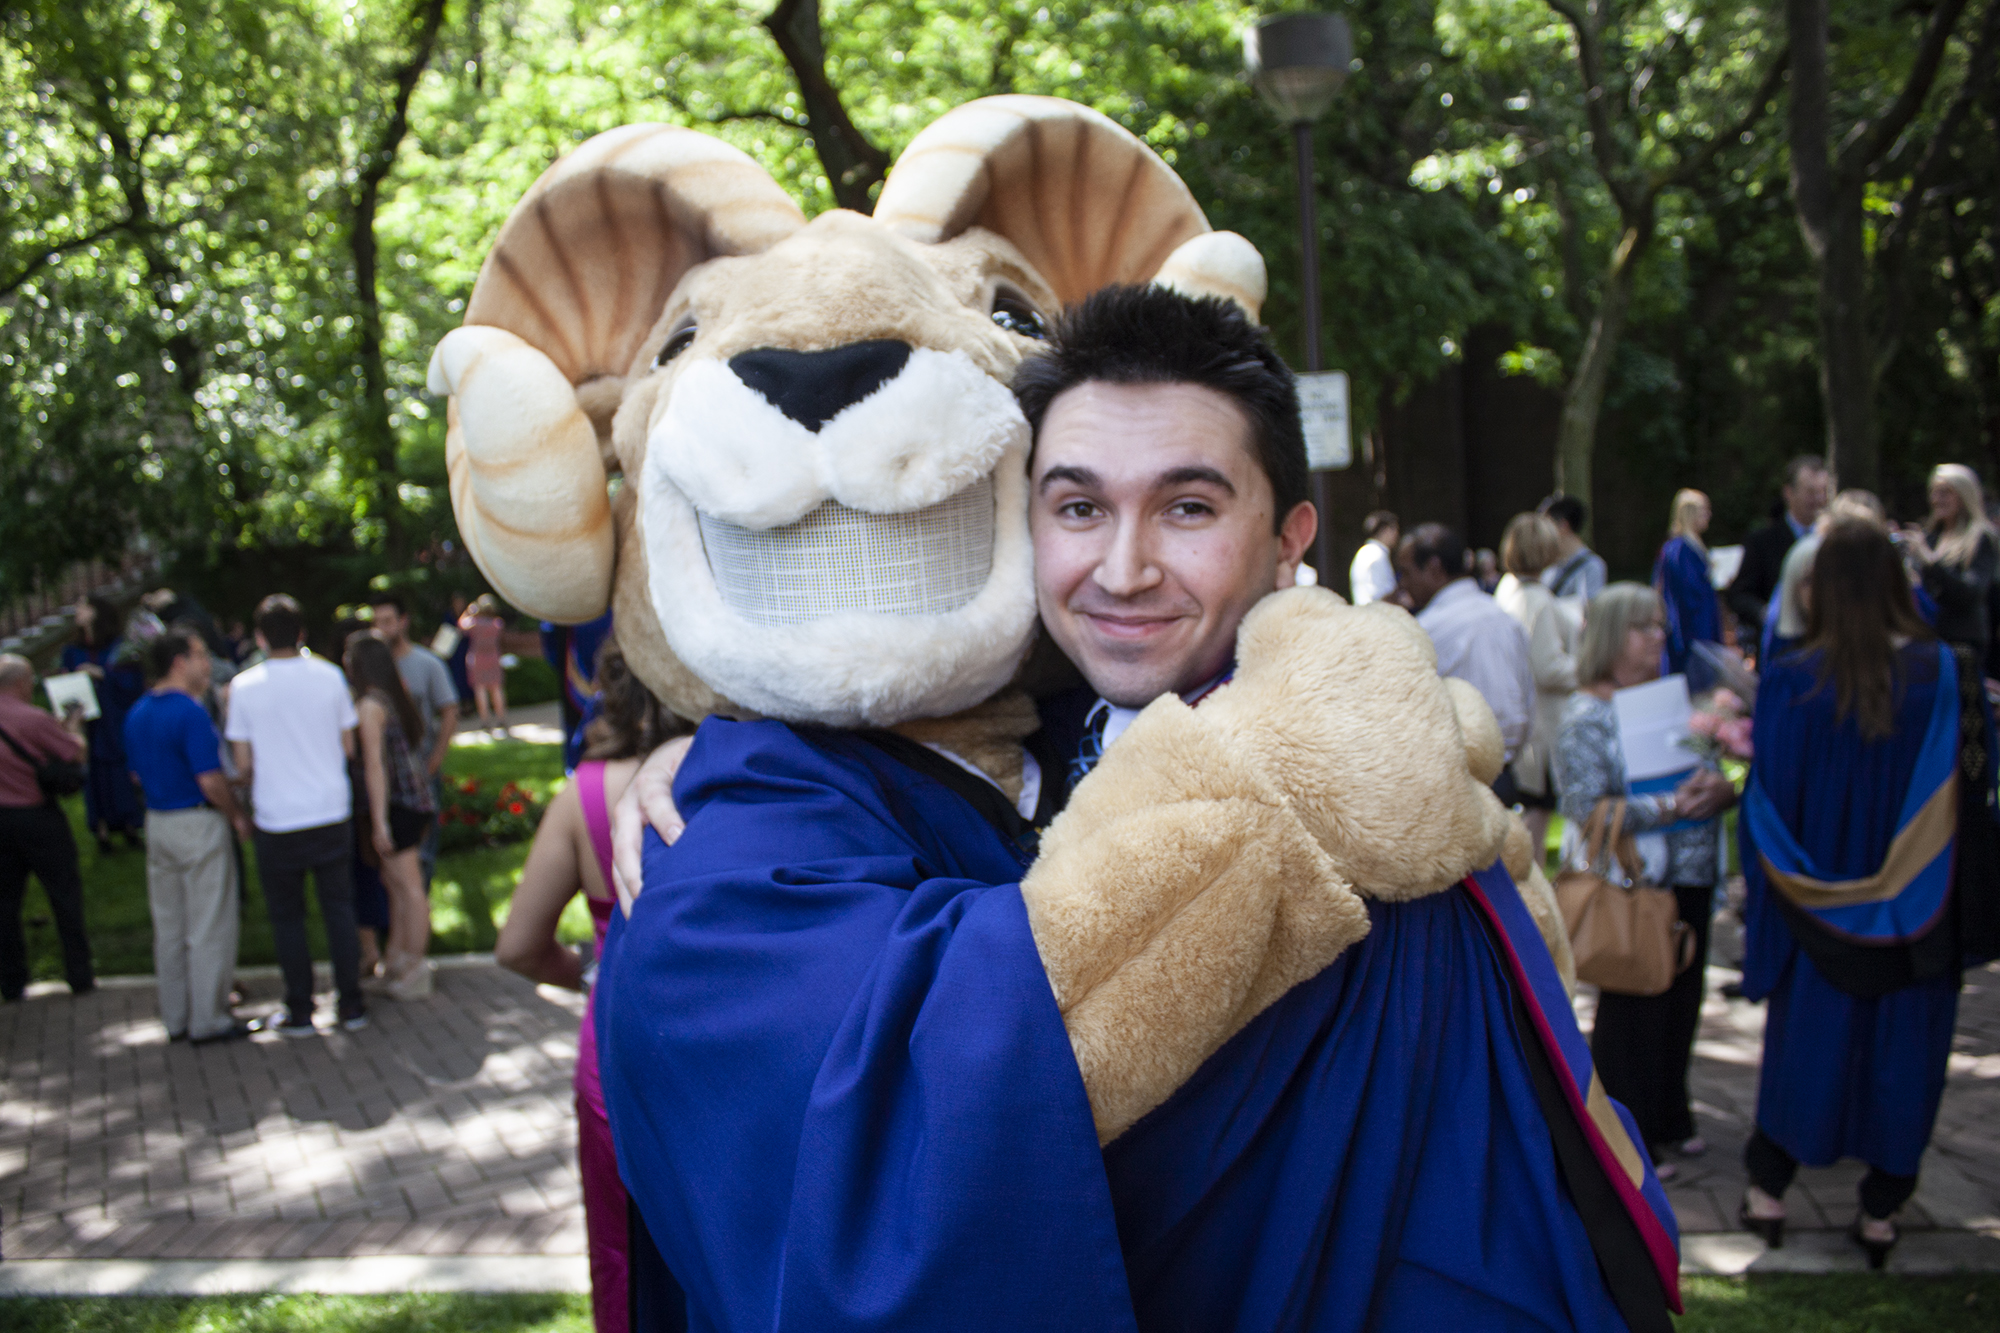 Steve Silva pictured with Eggy the mascot at Ryerson University in Toronto on June 8, 2012. (Supplied)